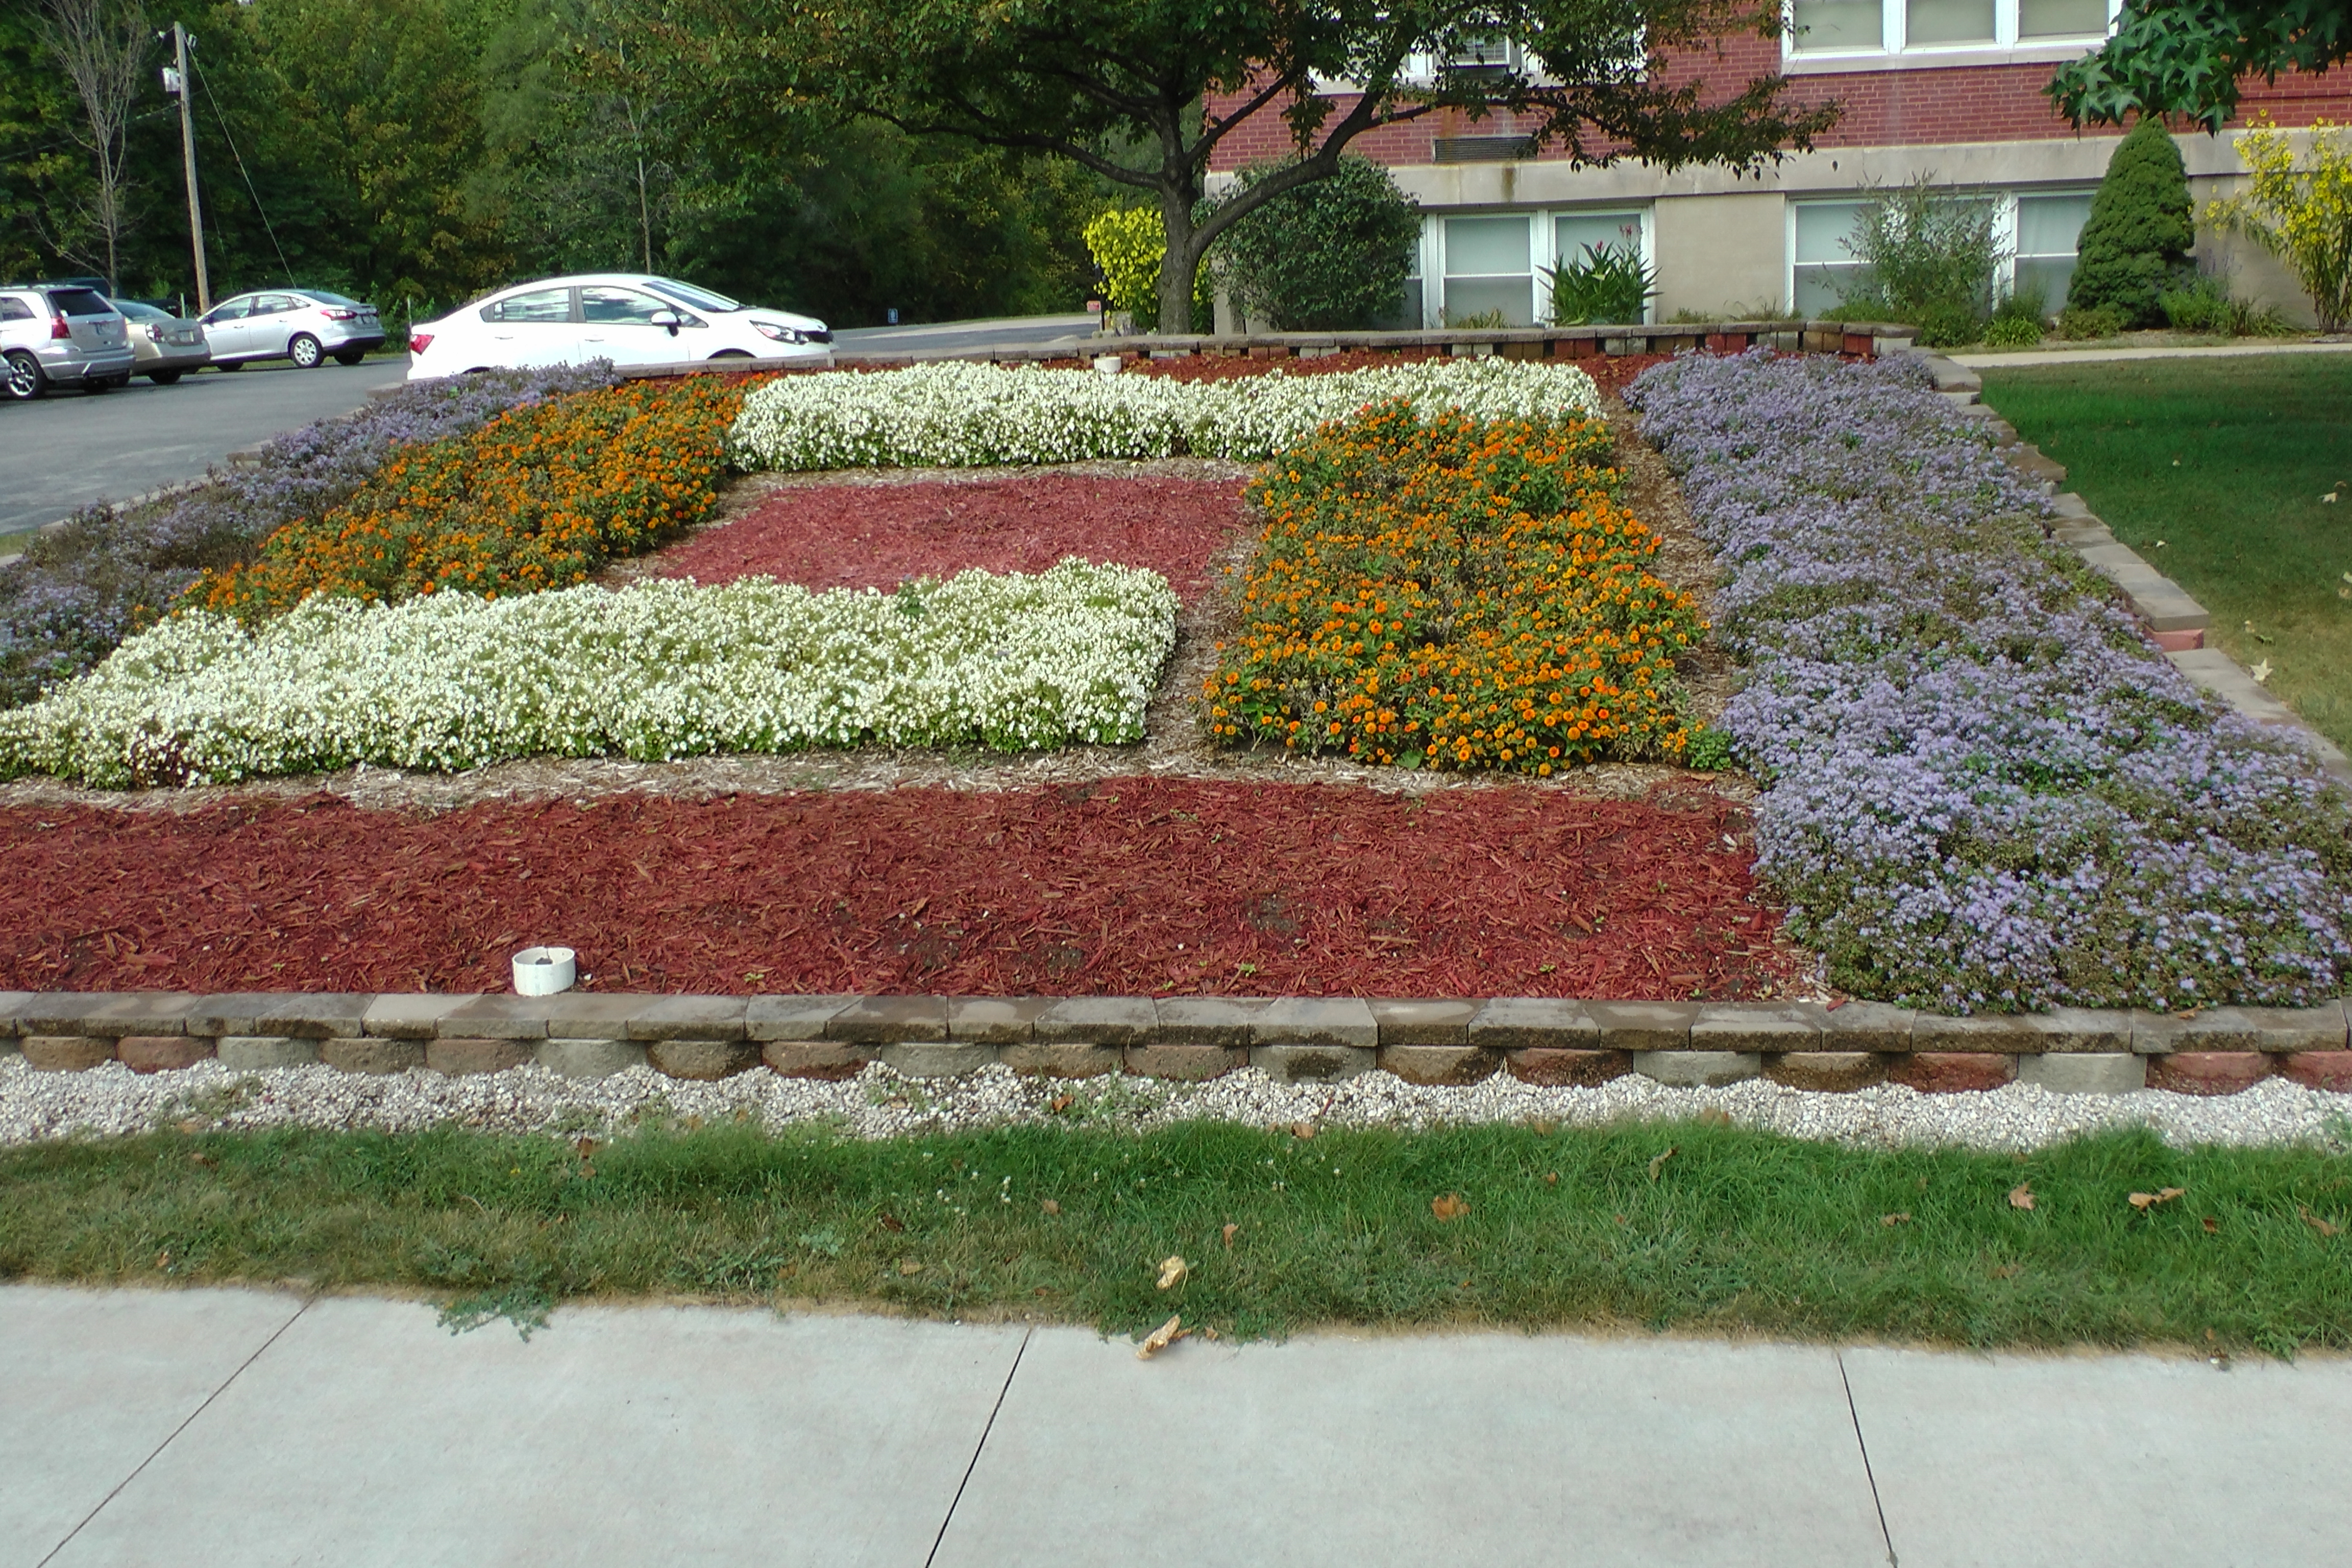 Indiana elkhart county bristol - The Quilt Gardens And The Fall Flower Carpets Share A Celebrate The Arts Theme The Carpets In Downtown Nappanee And Downtown Elkhart And Are Crafted With